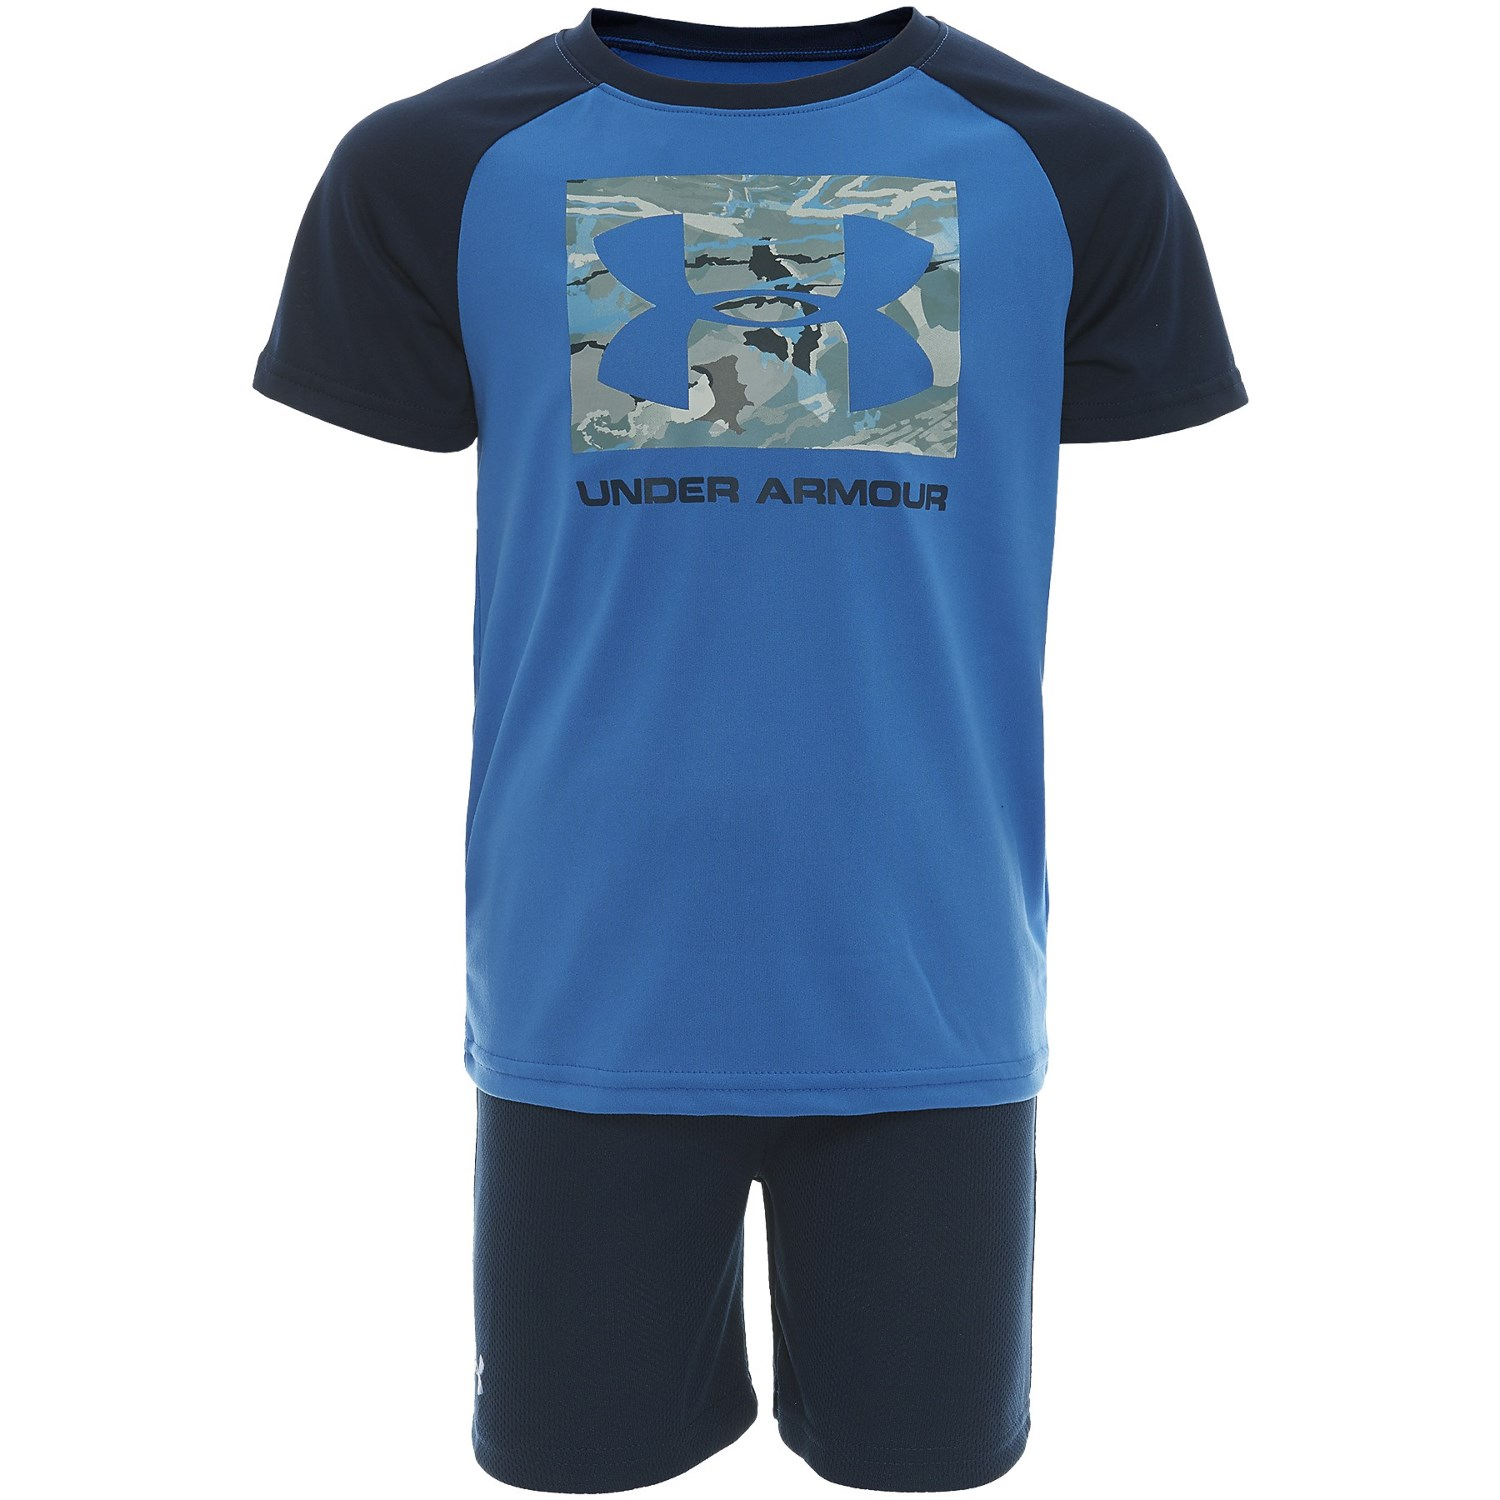 b0ff160f9 Under Armour Forest Reaper Raglan T-Shirt and Shorts - Short Sleeve (For  Toddler Boys)